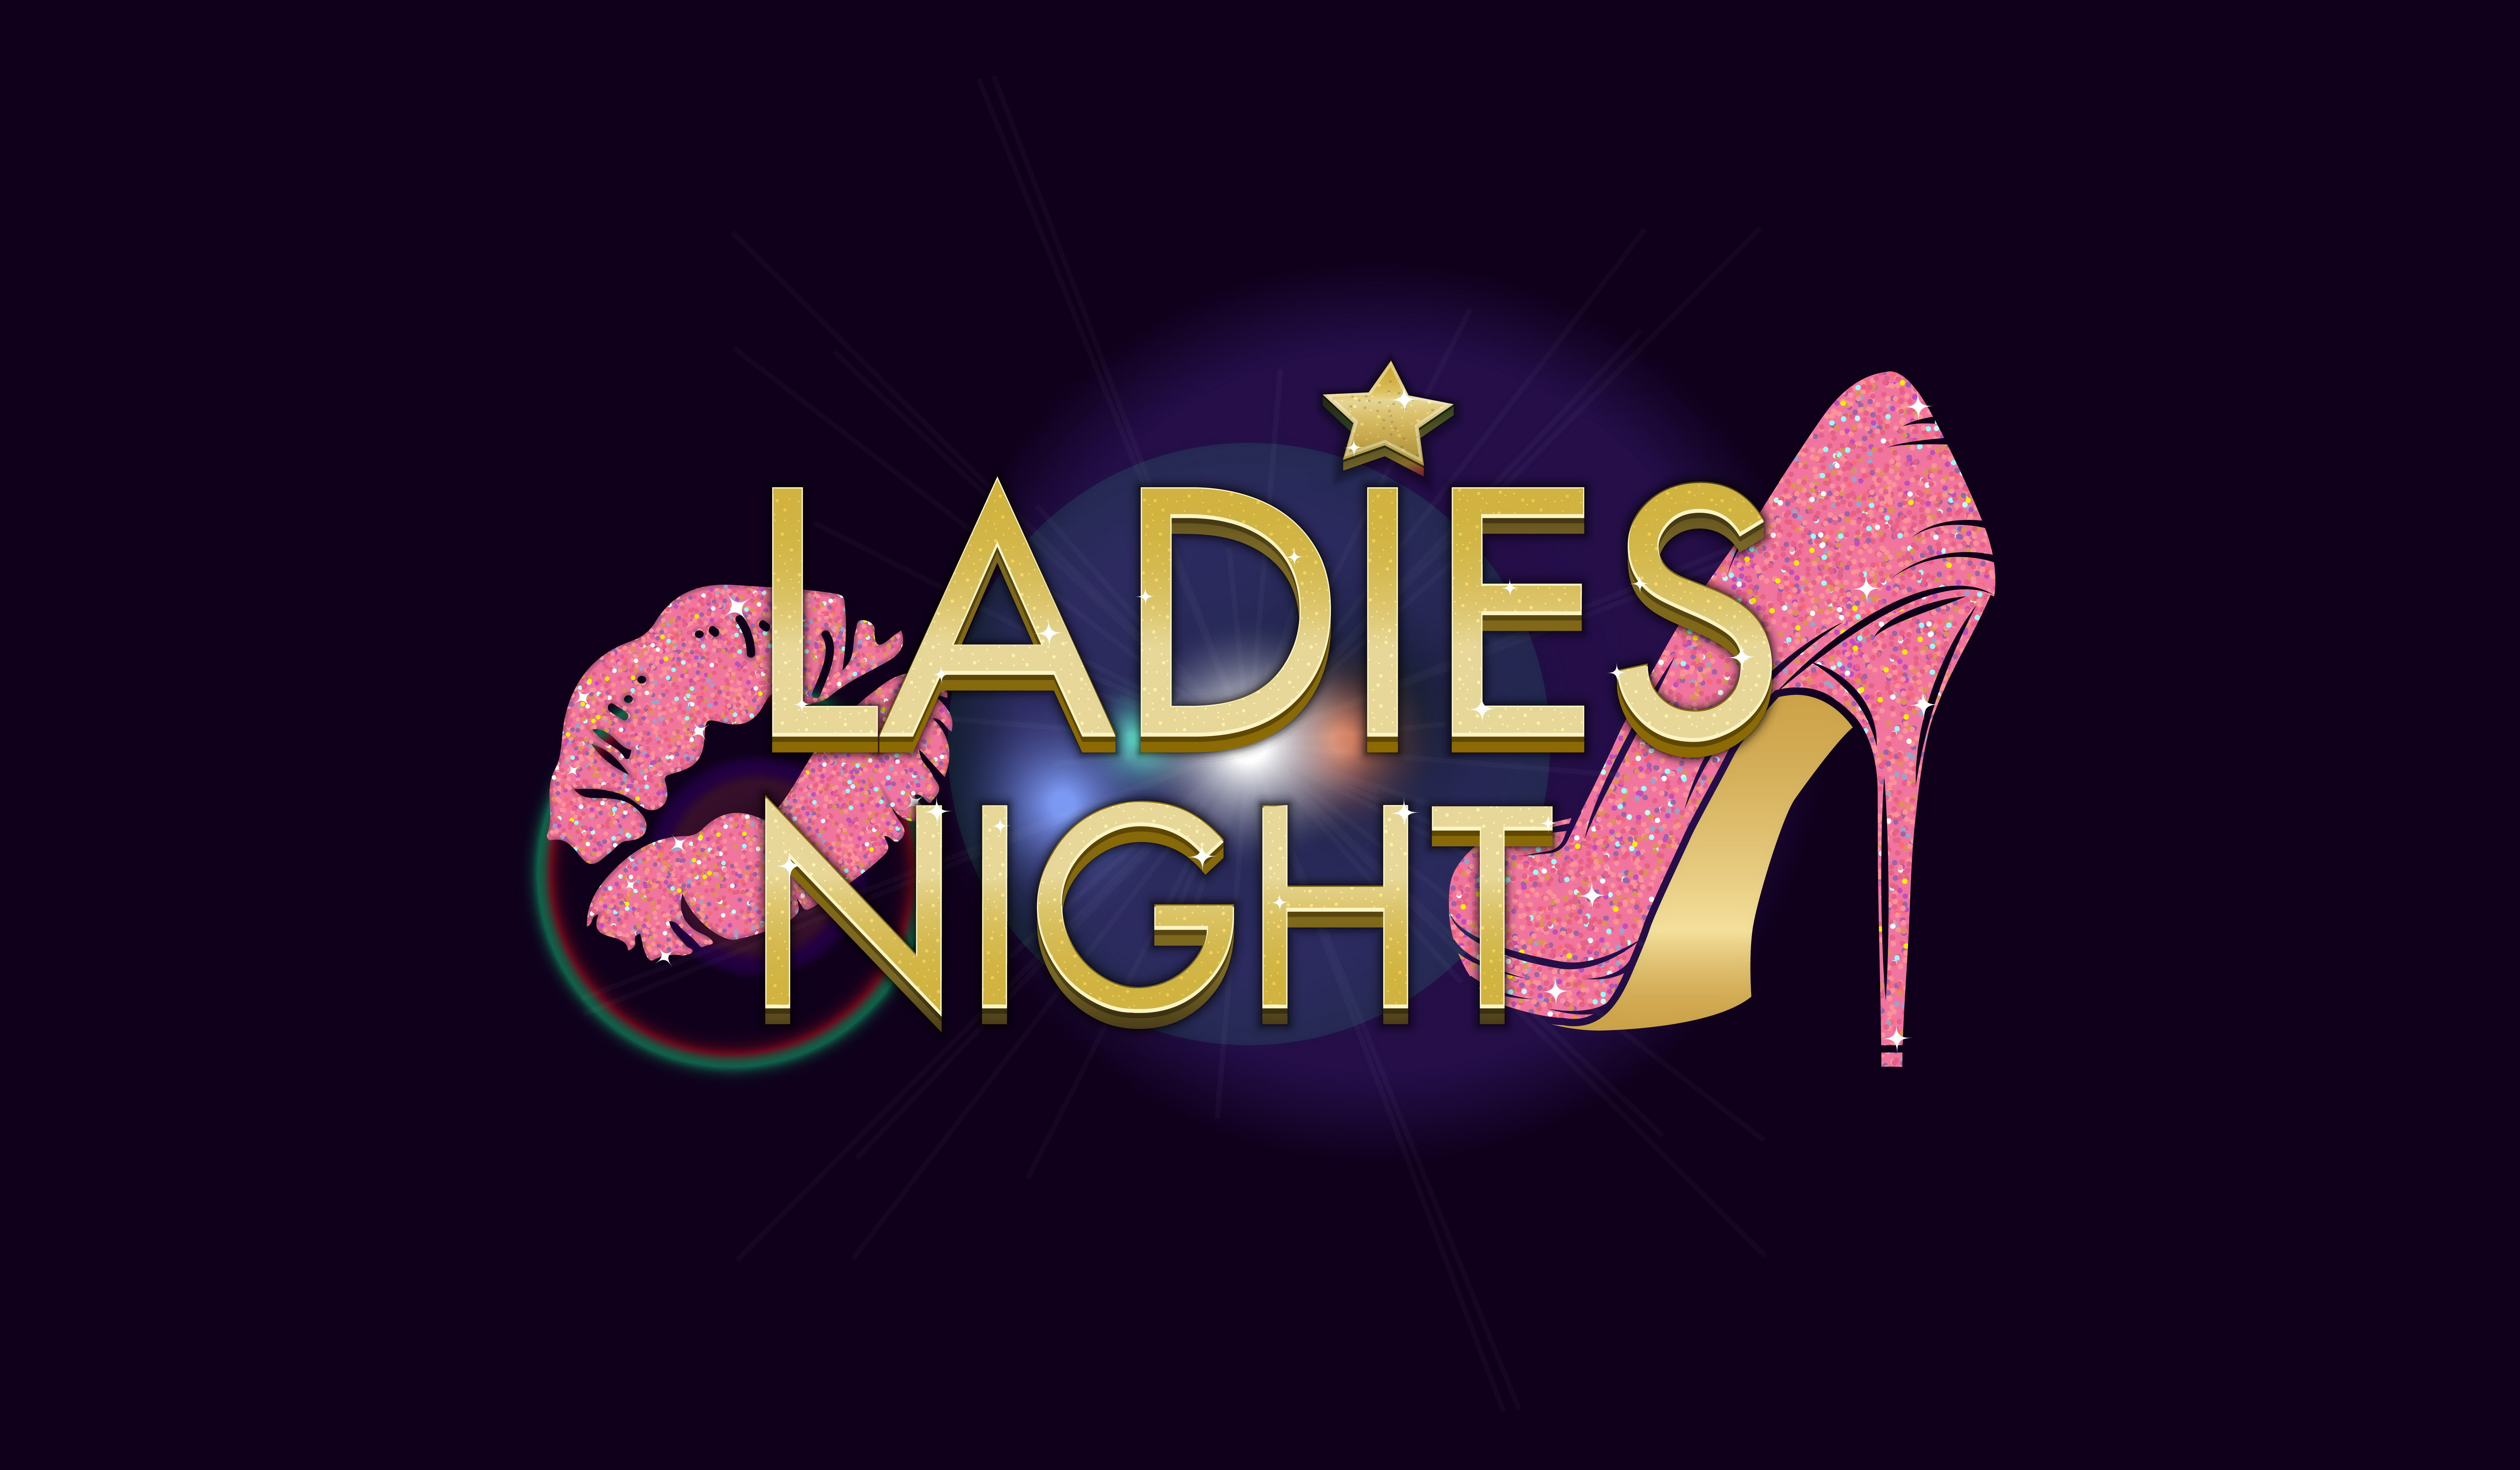 Ladies' Night is an Outdated, Sexist Business Practice